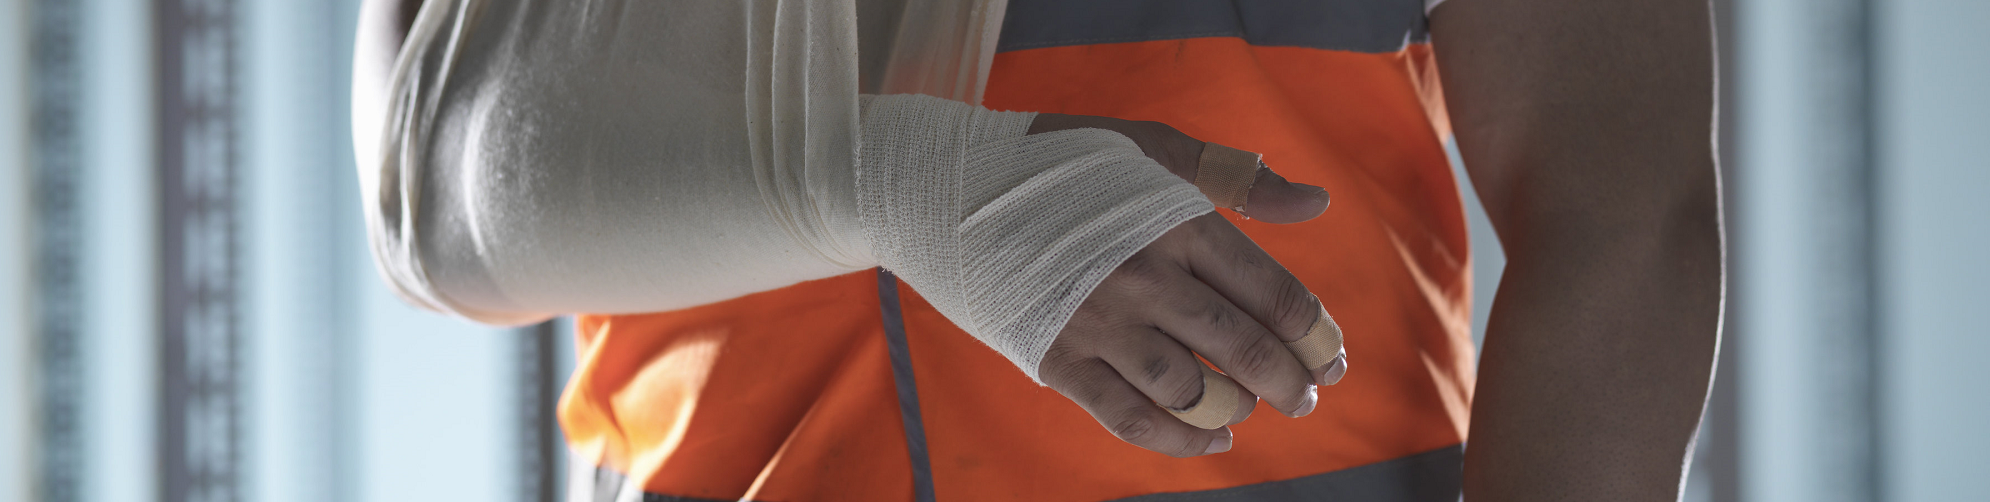 2000x500_Blog header_Injury